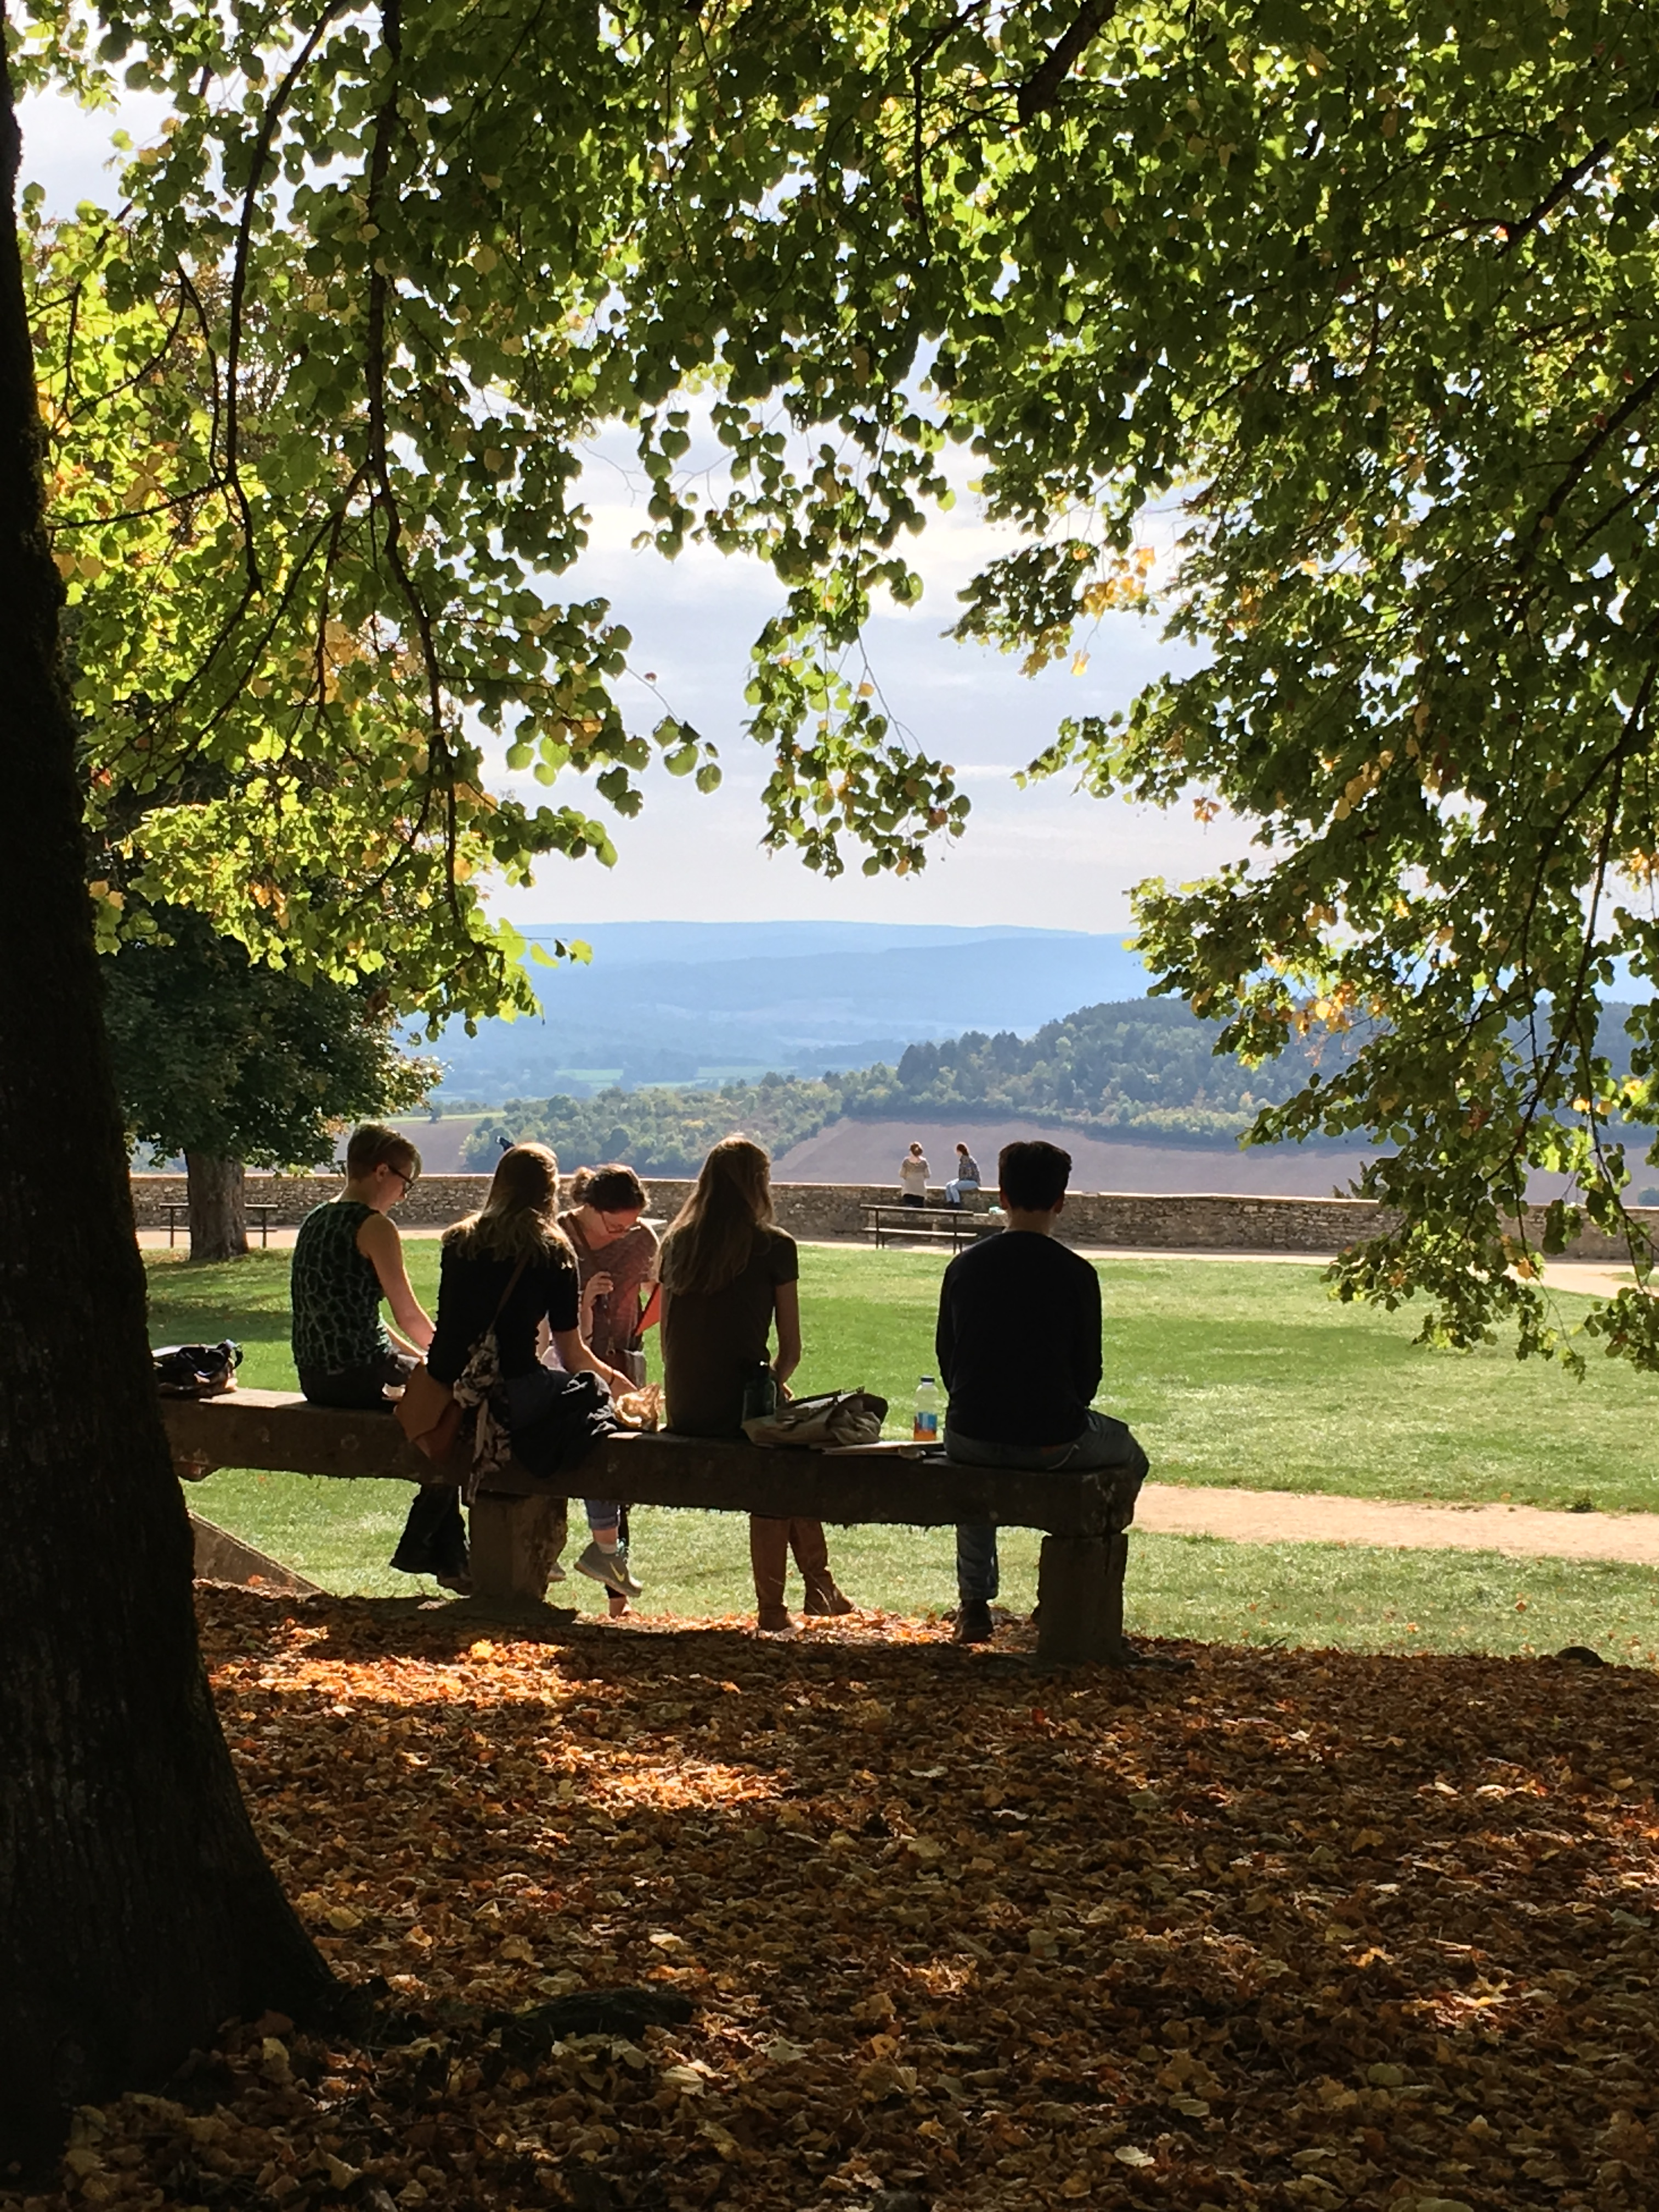 Students sit on a fence under a tree overlooking a scenic landscape in Vezelay, France